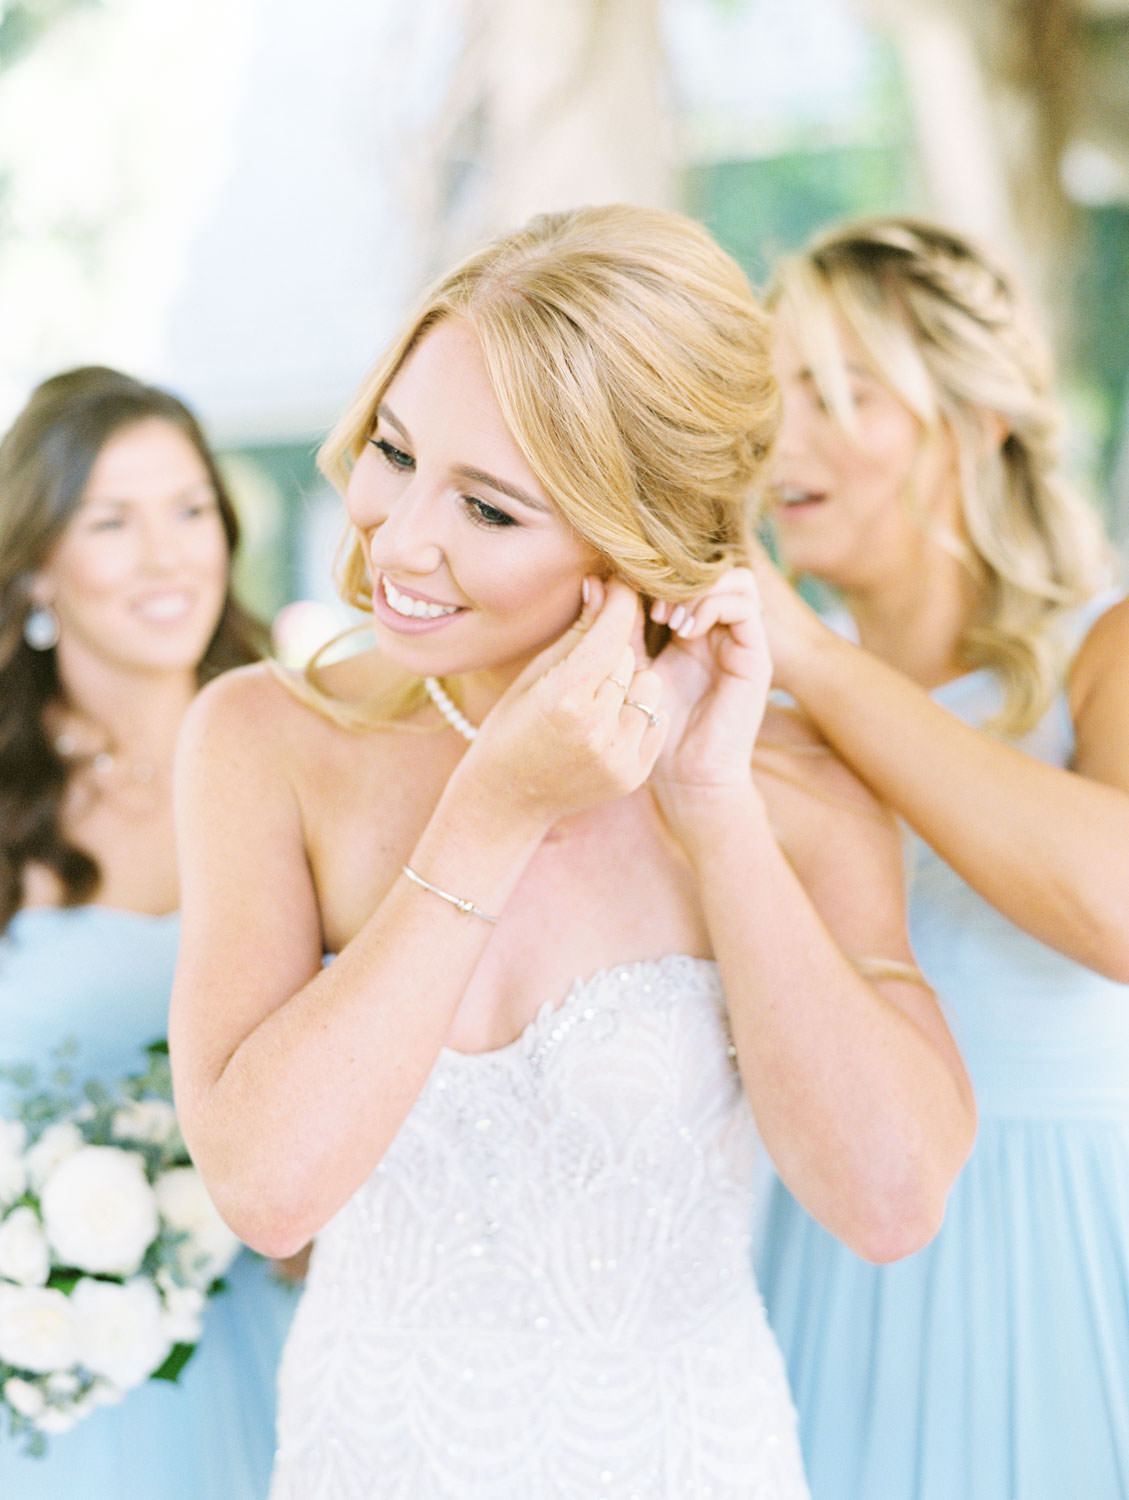 Bride putting on earrings surrounded by bridesmaids wearing pale blue gowns shot on film, Del Mar Country Club Wedding by Cavin Elizabeth Photography